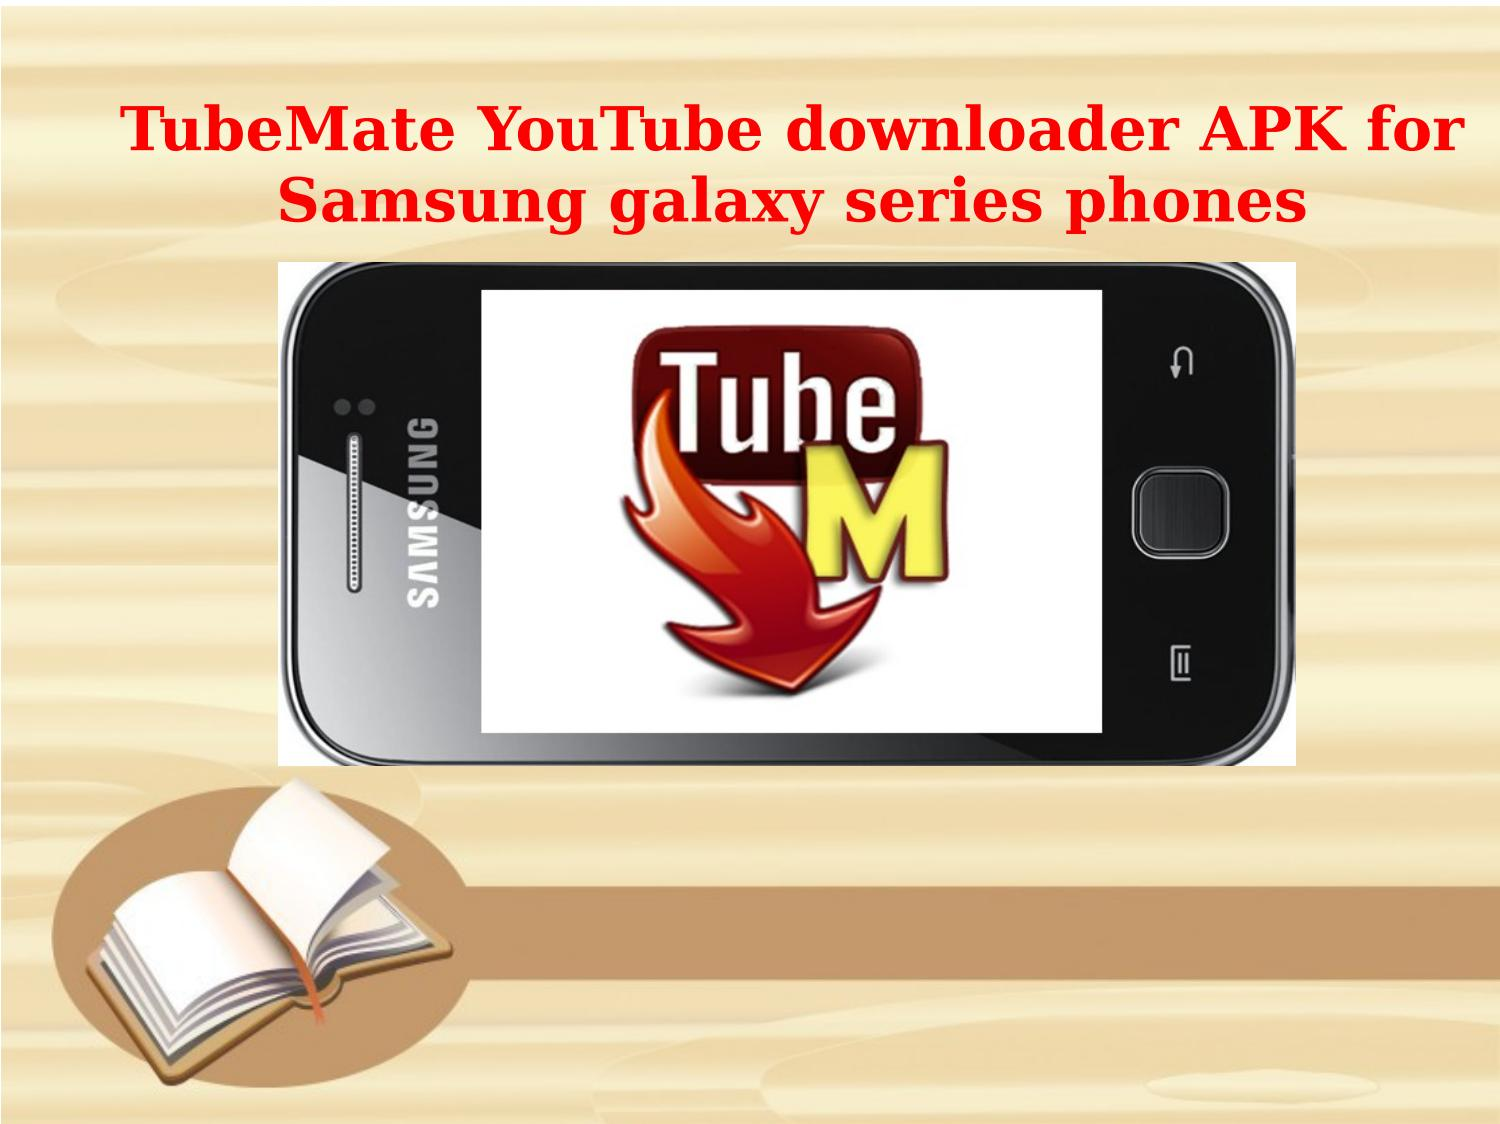 Tubemate youtube downloader apk for samsung galaxy series